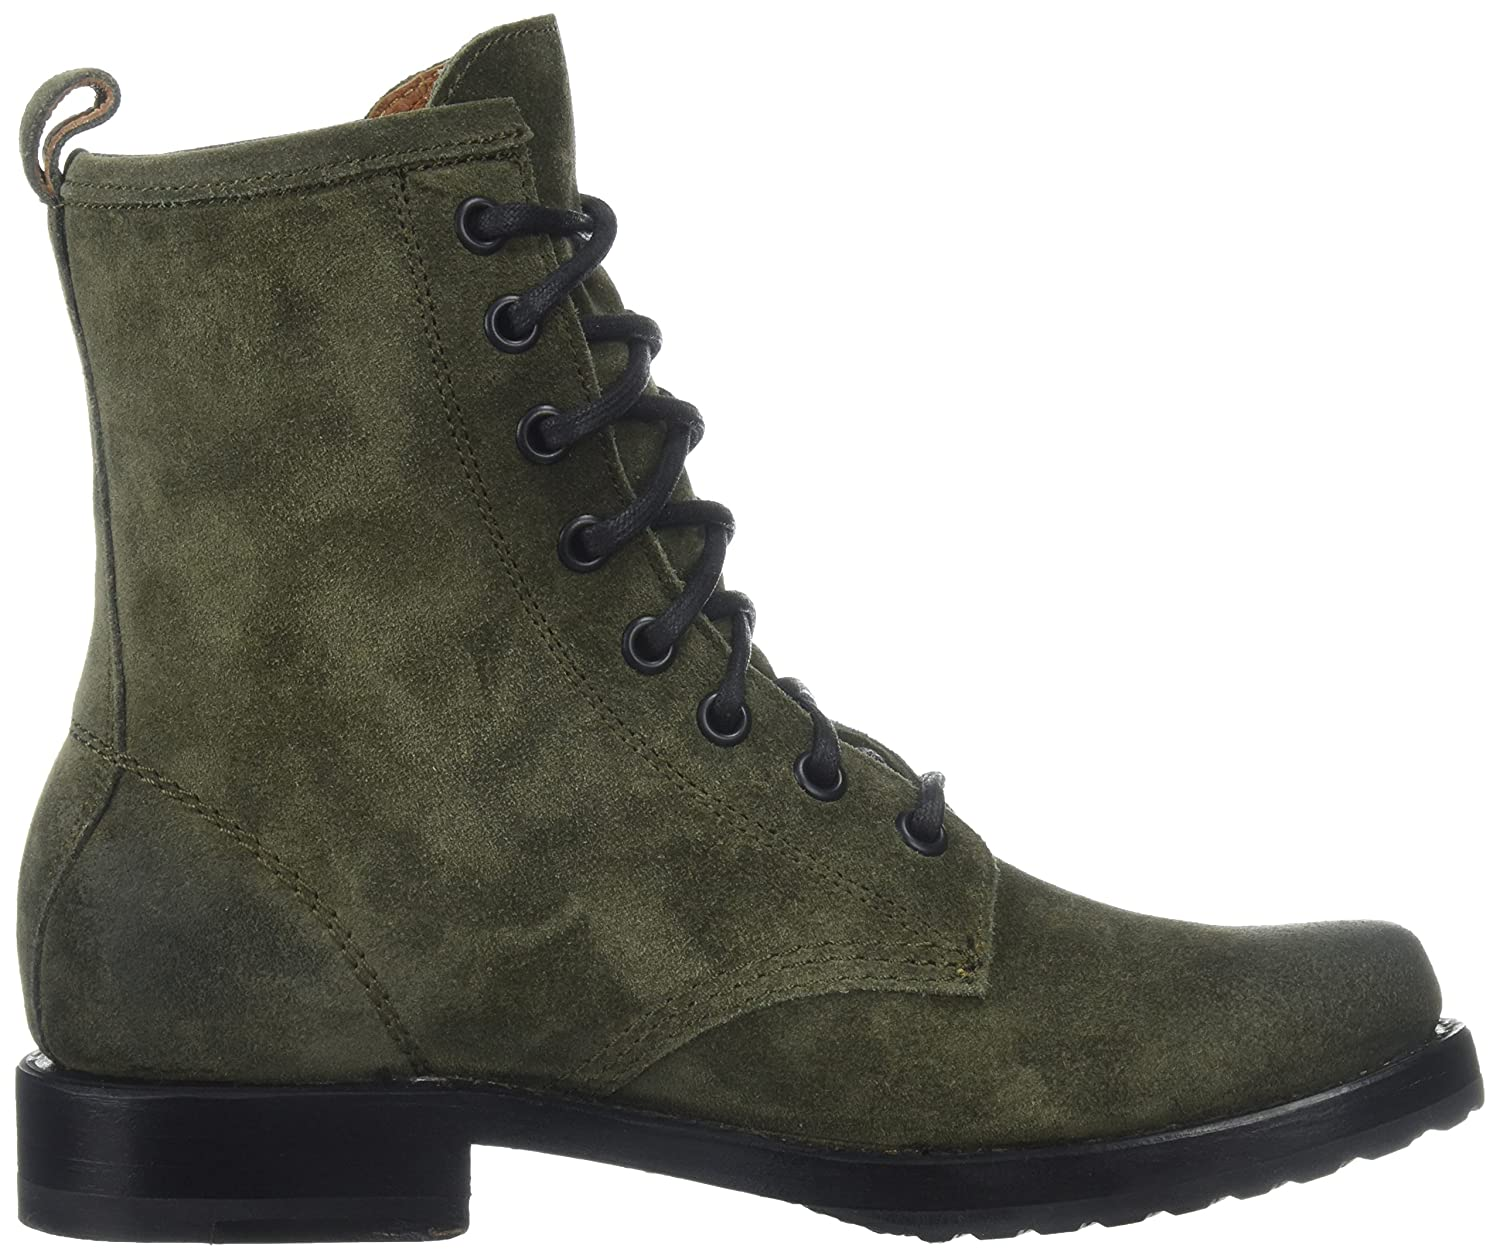 FRYE Women's Veronica Combat Boot B01NCRSEH8 10 B(M) US|Forest Soft Oiled Suede